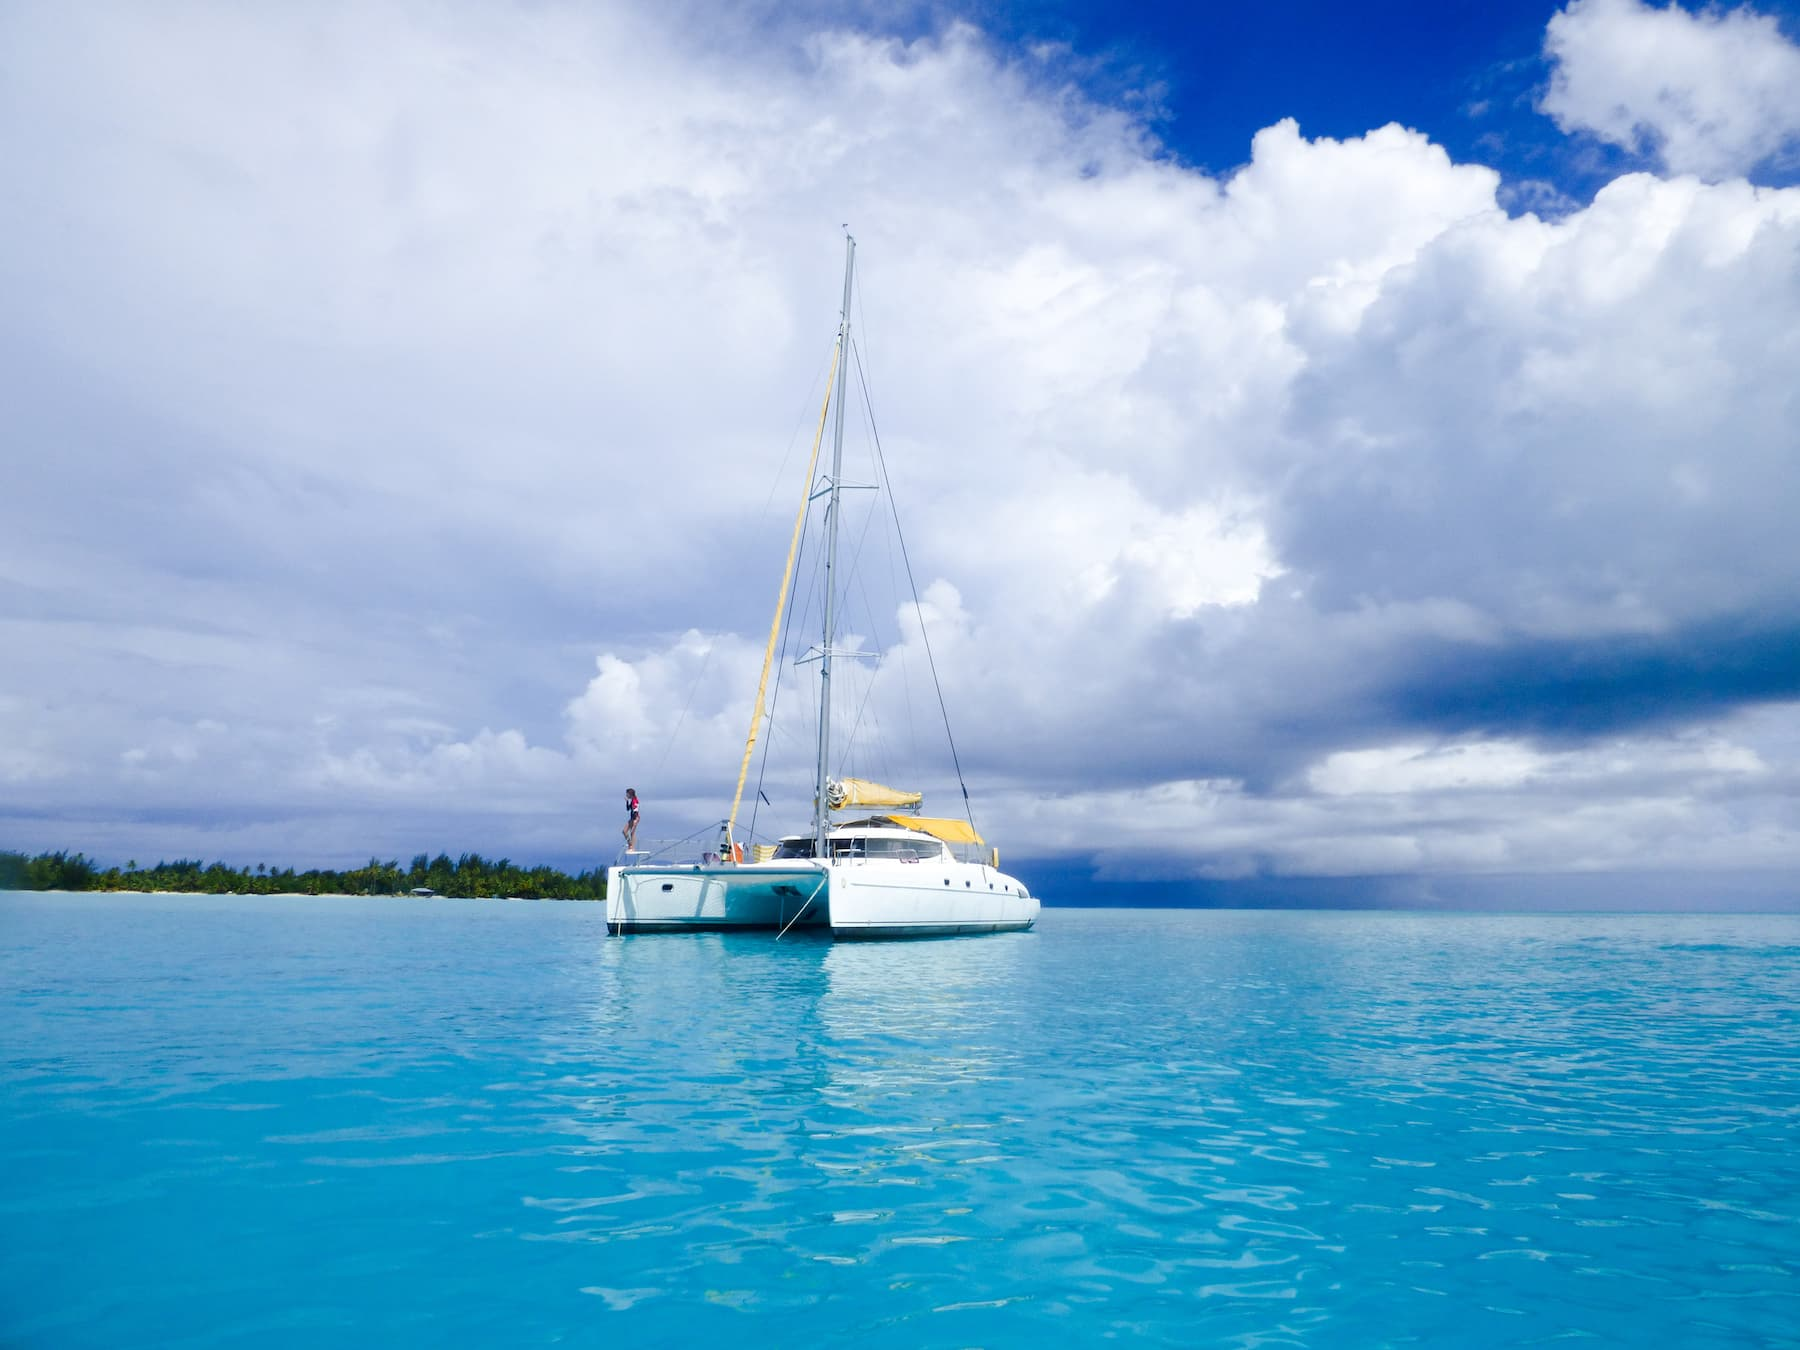 https://tahititourisme.jp/wp-content/uploads/2017/08/bateau-tlc-modif-11-copie.jpg